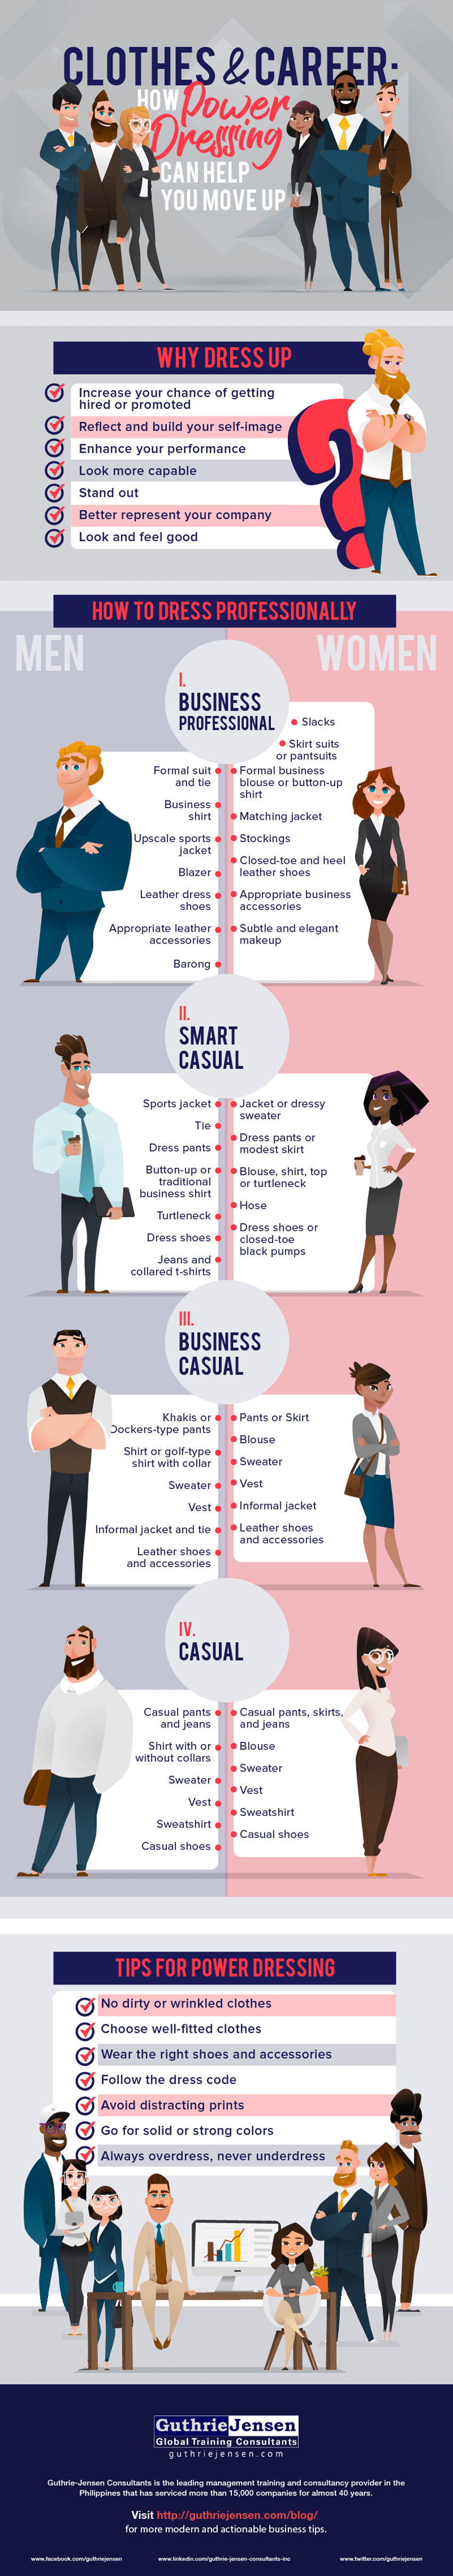 Infographic-Clothes and Career